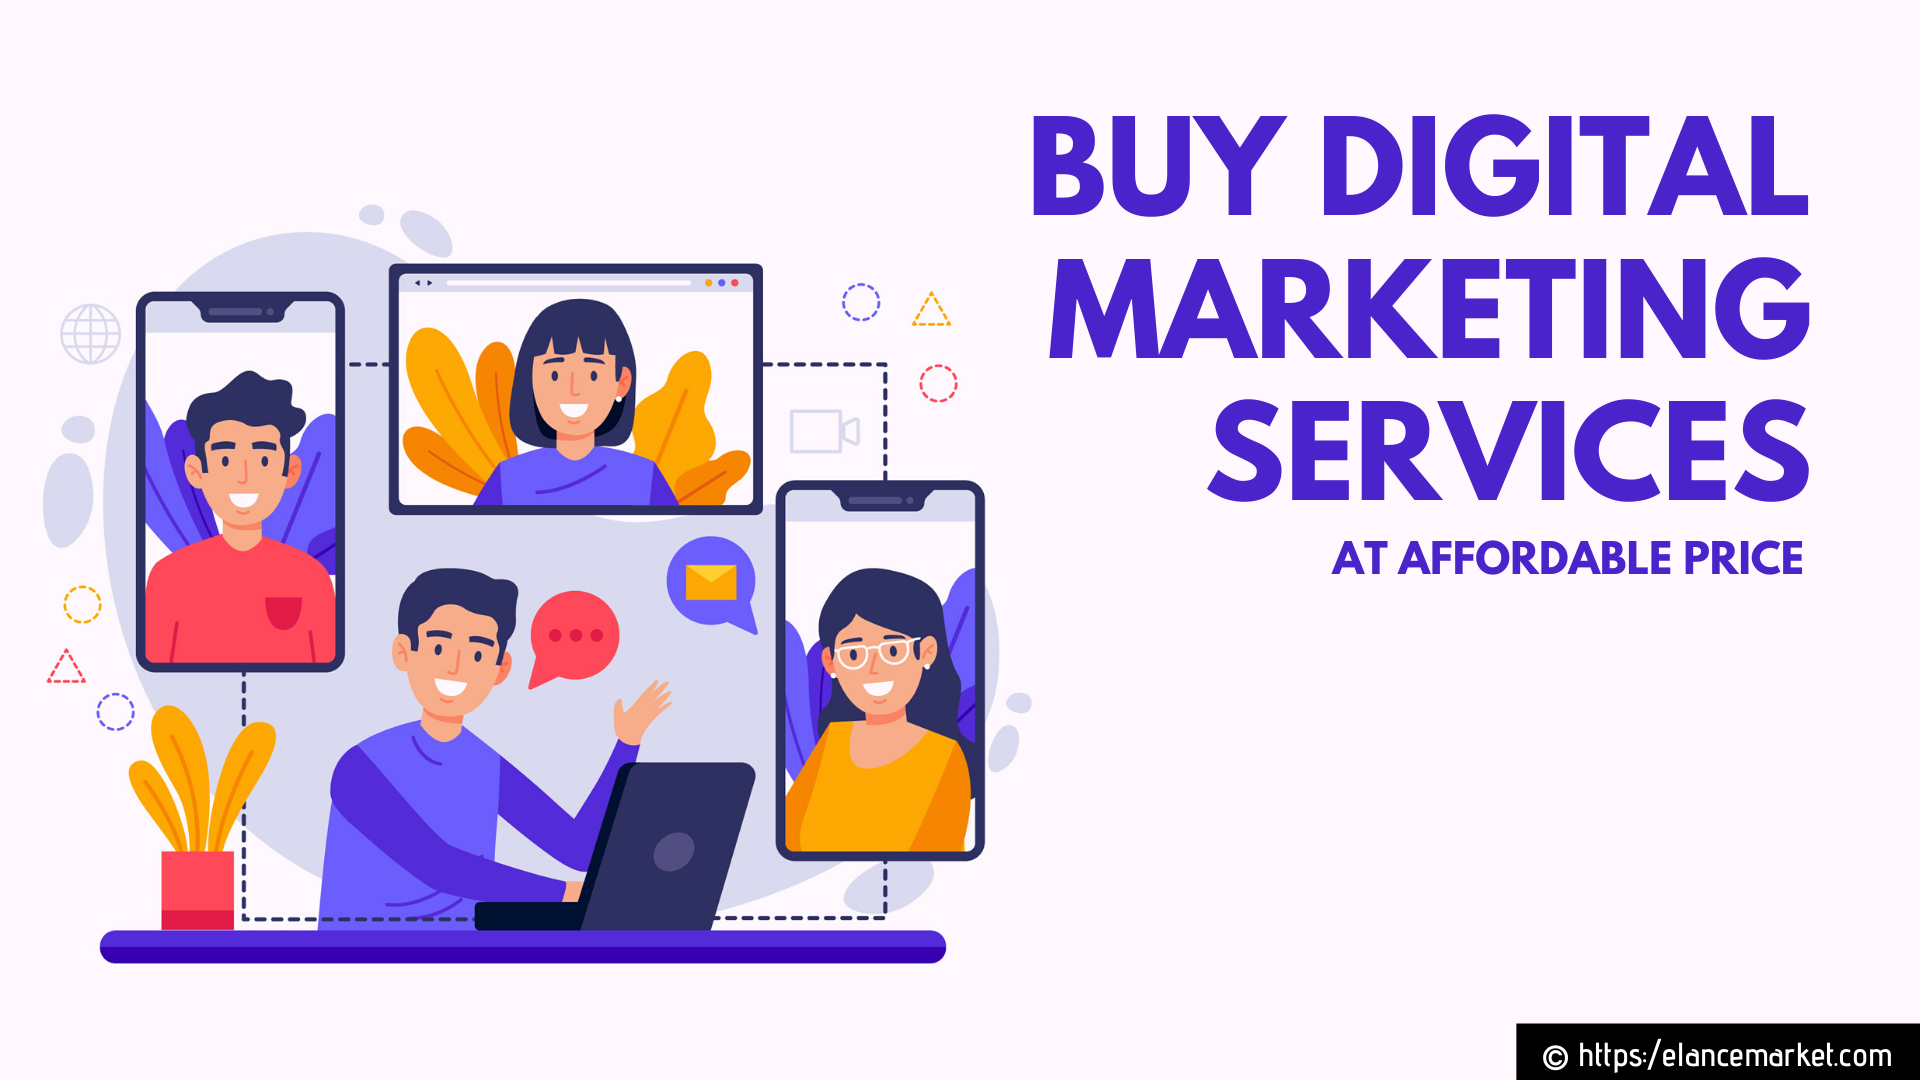 Buy Digital Marketing Services at Affordable Price - Save your Time & Money